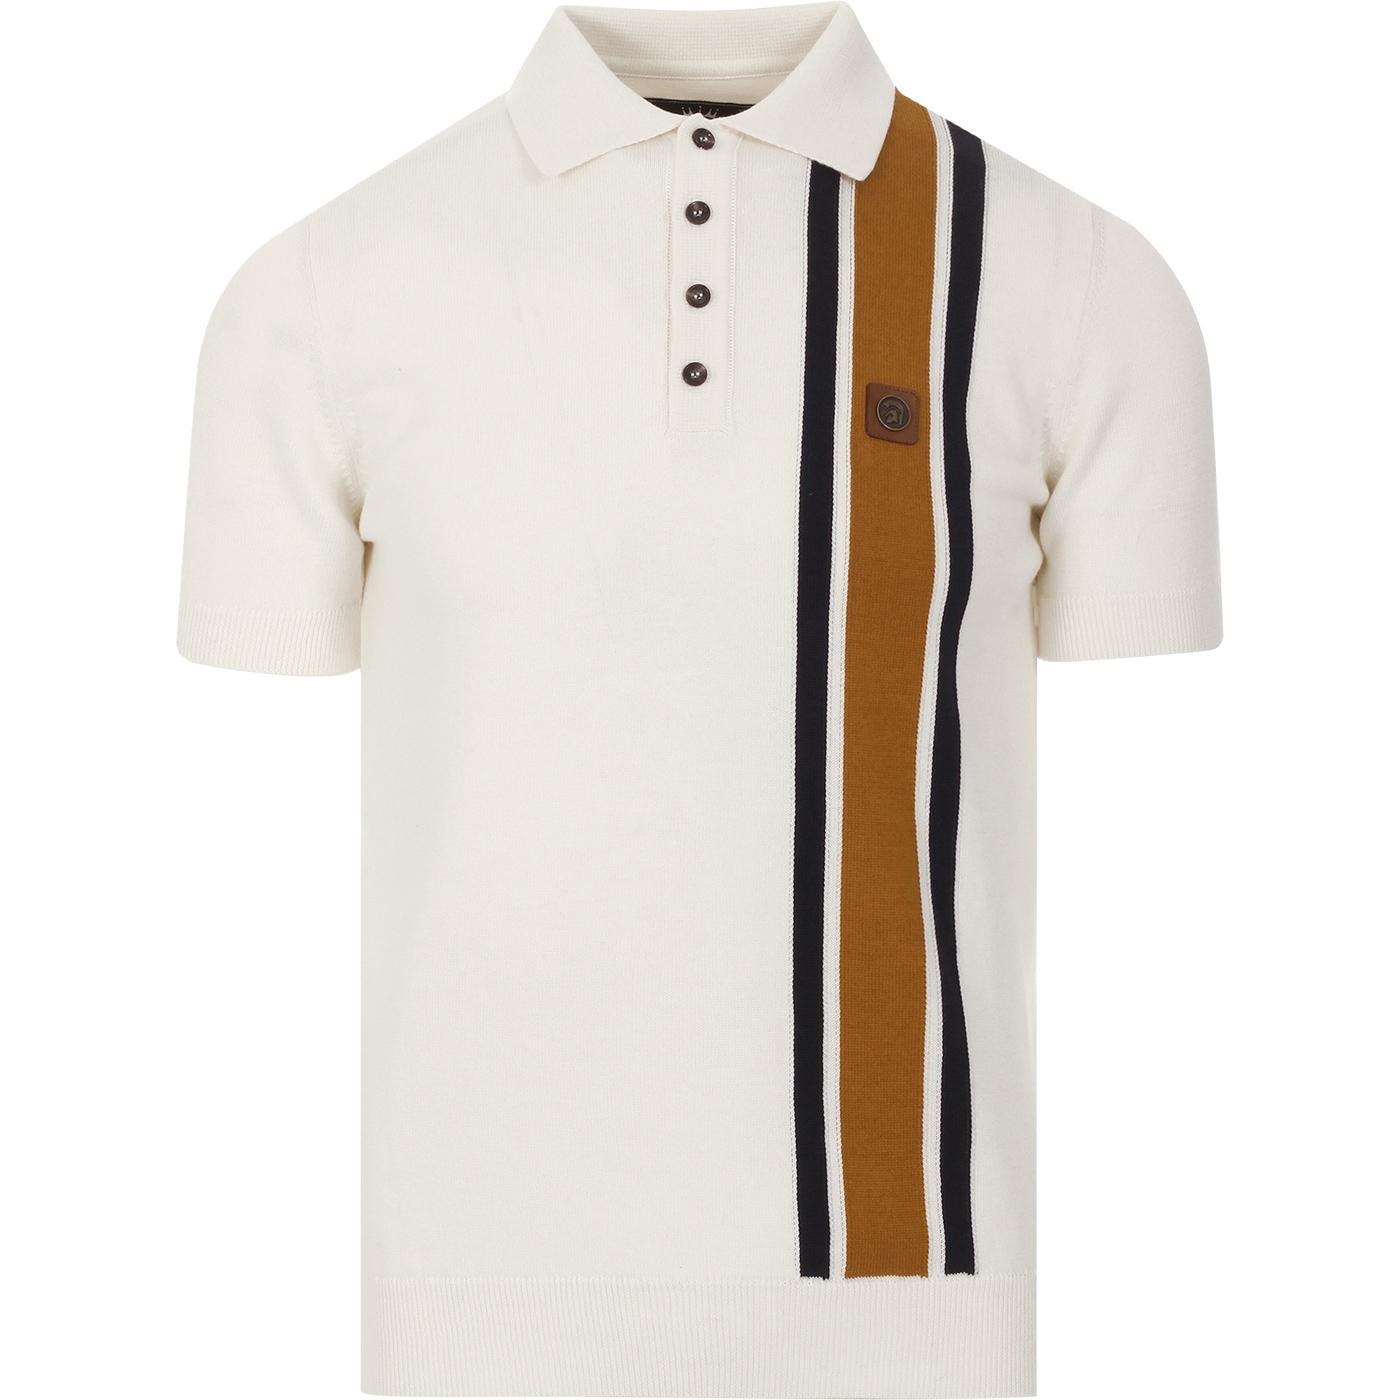 TROJAN RECORDS Mod Racing Stripe Panel Knit Polo E